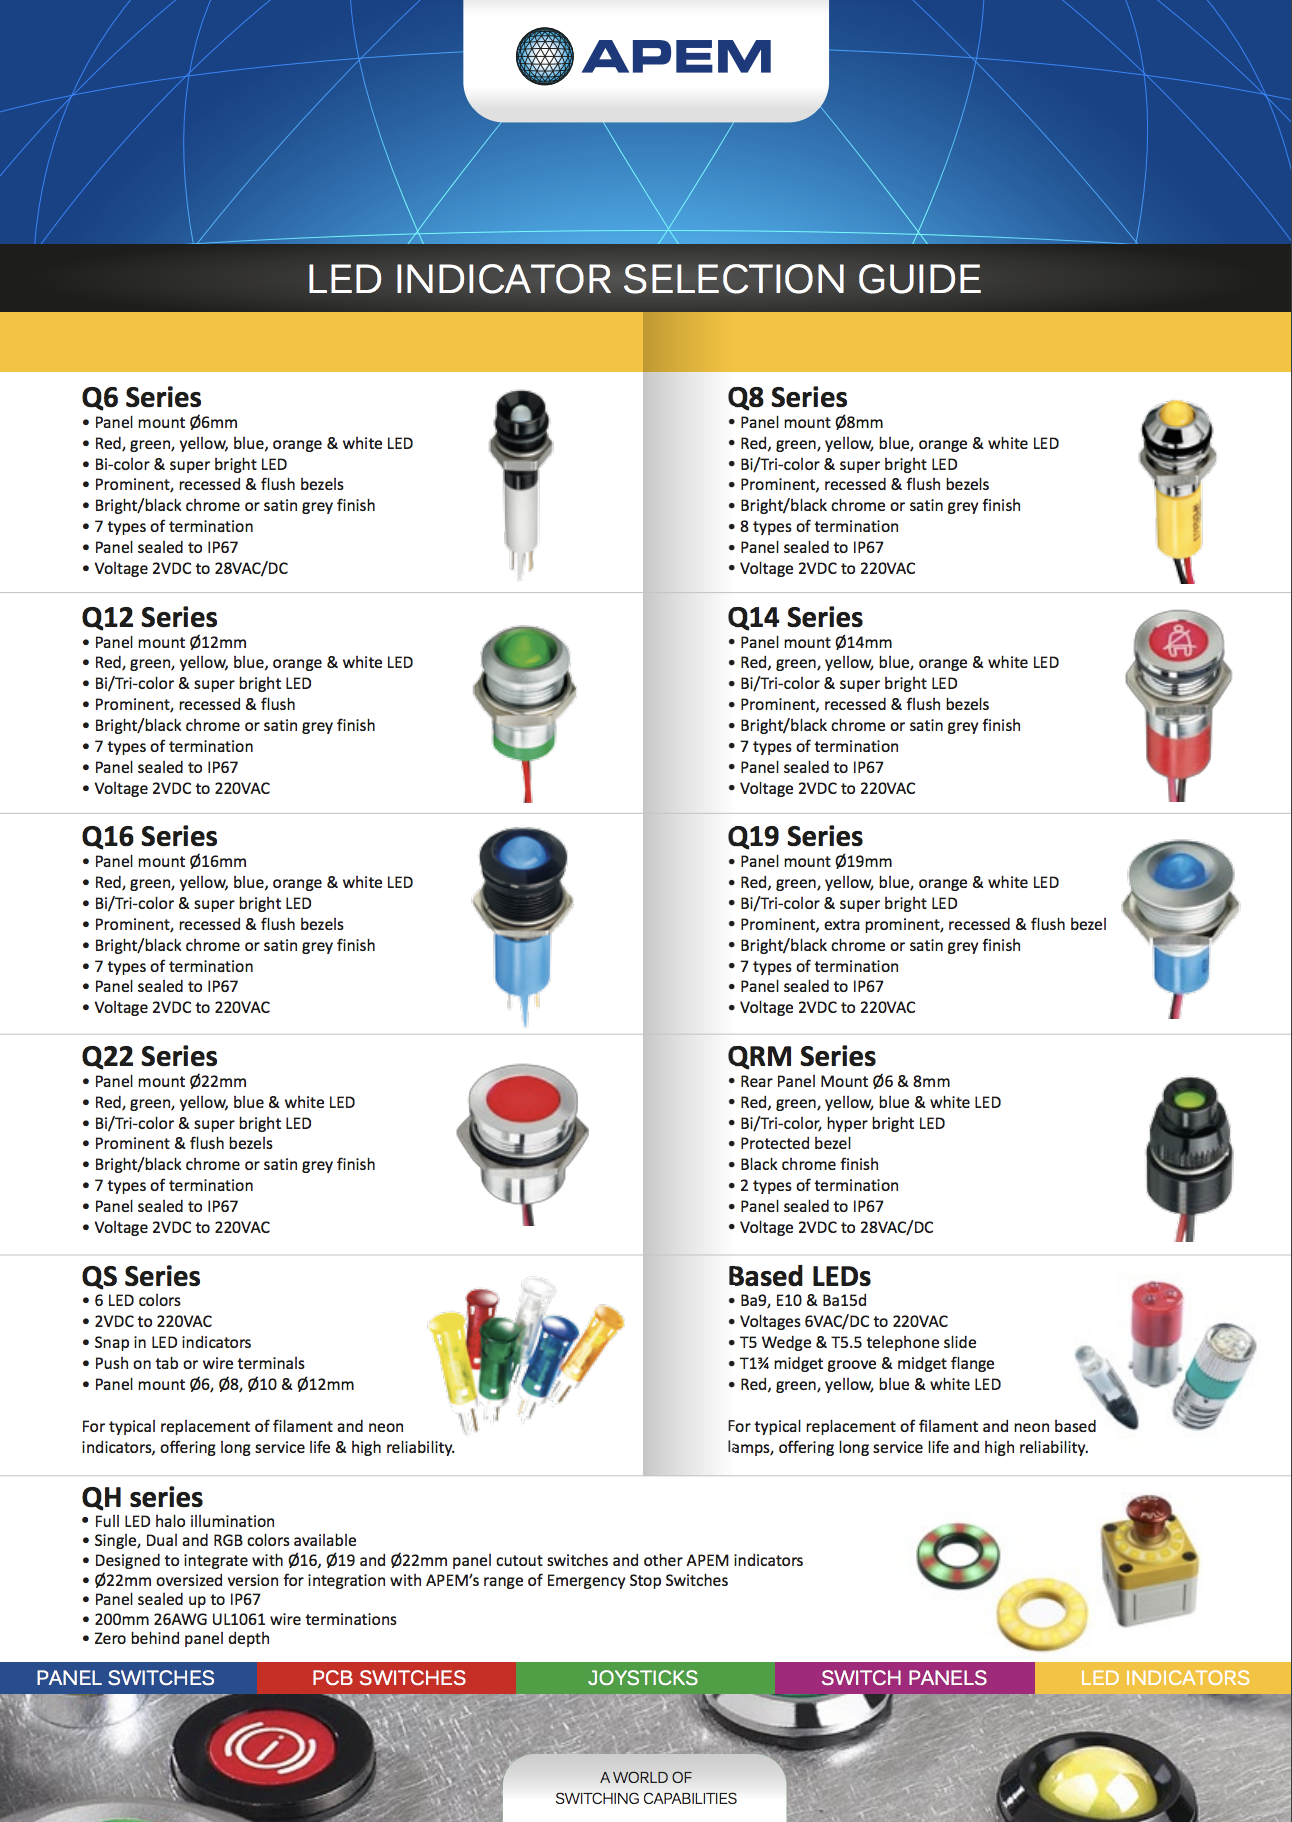 APEM LED Indicator Selection Guide